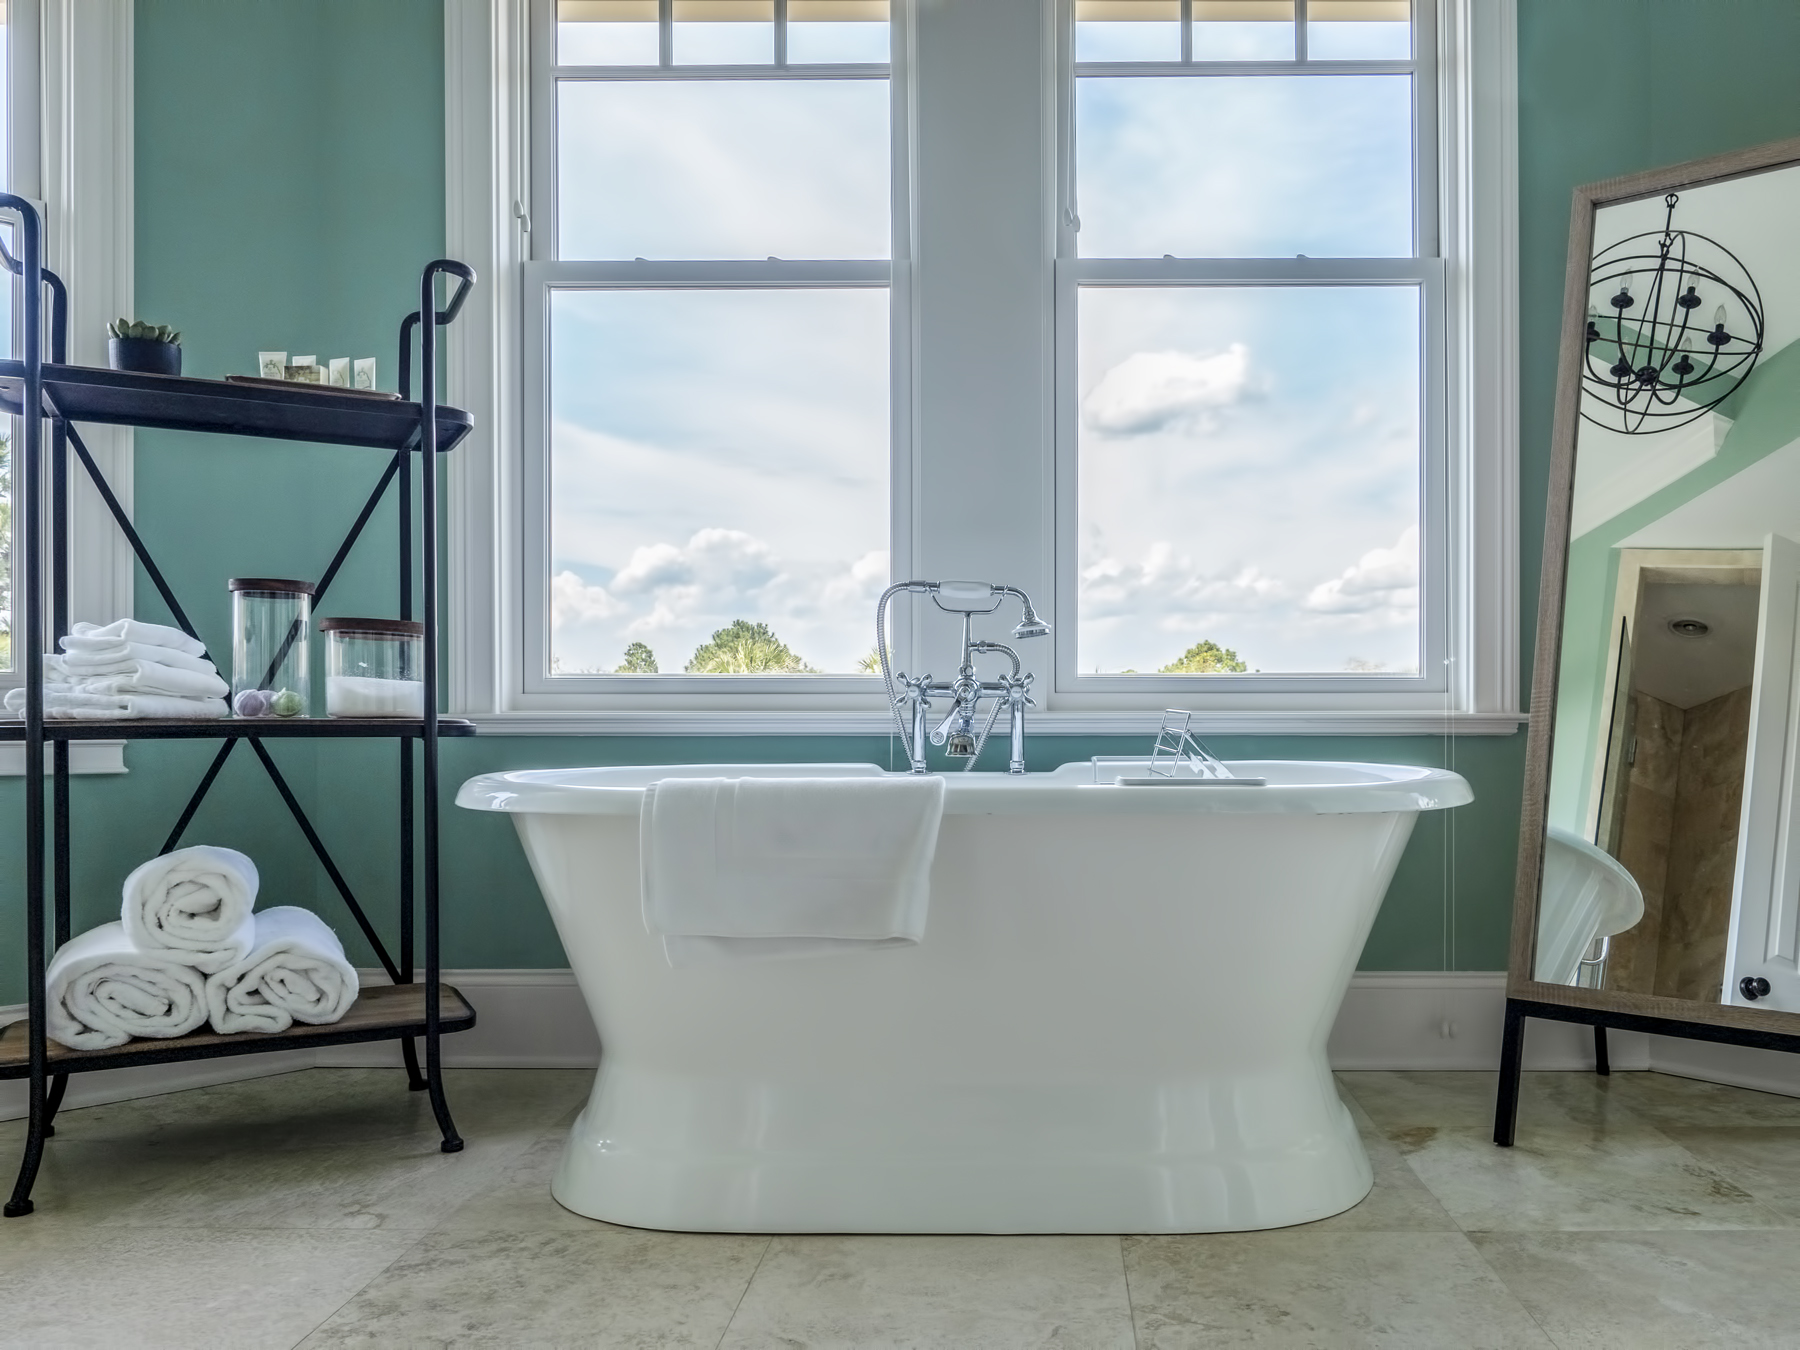 The large master bathroom features a soaking tub with panoramic views, dual granite vanities, and custom tile shower.